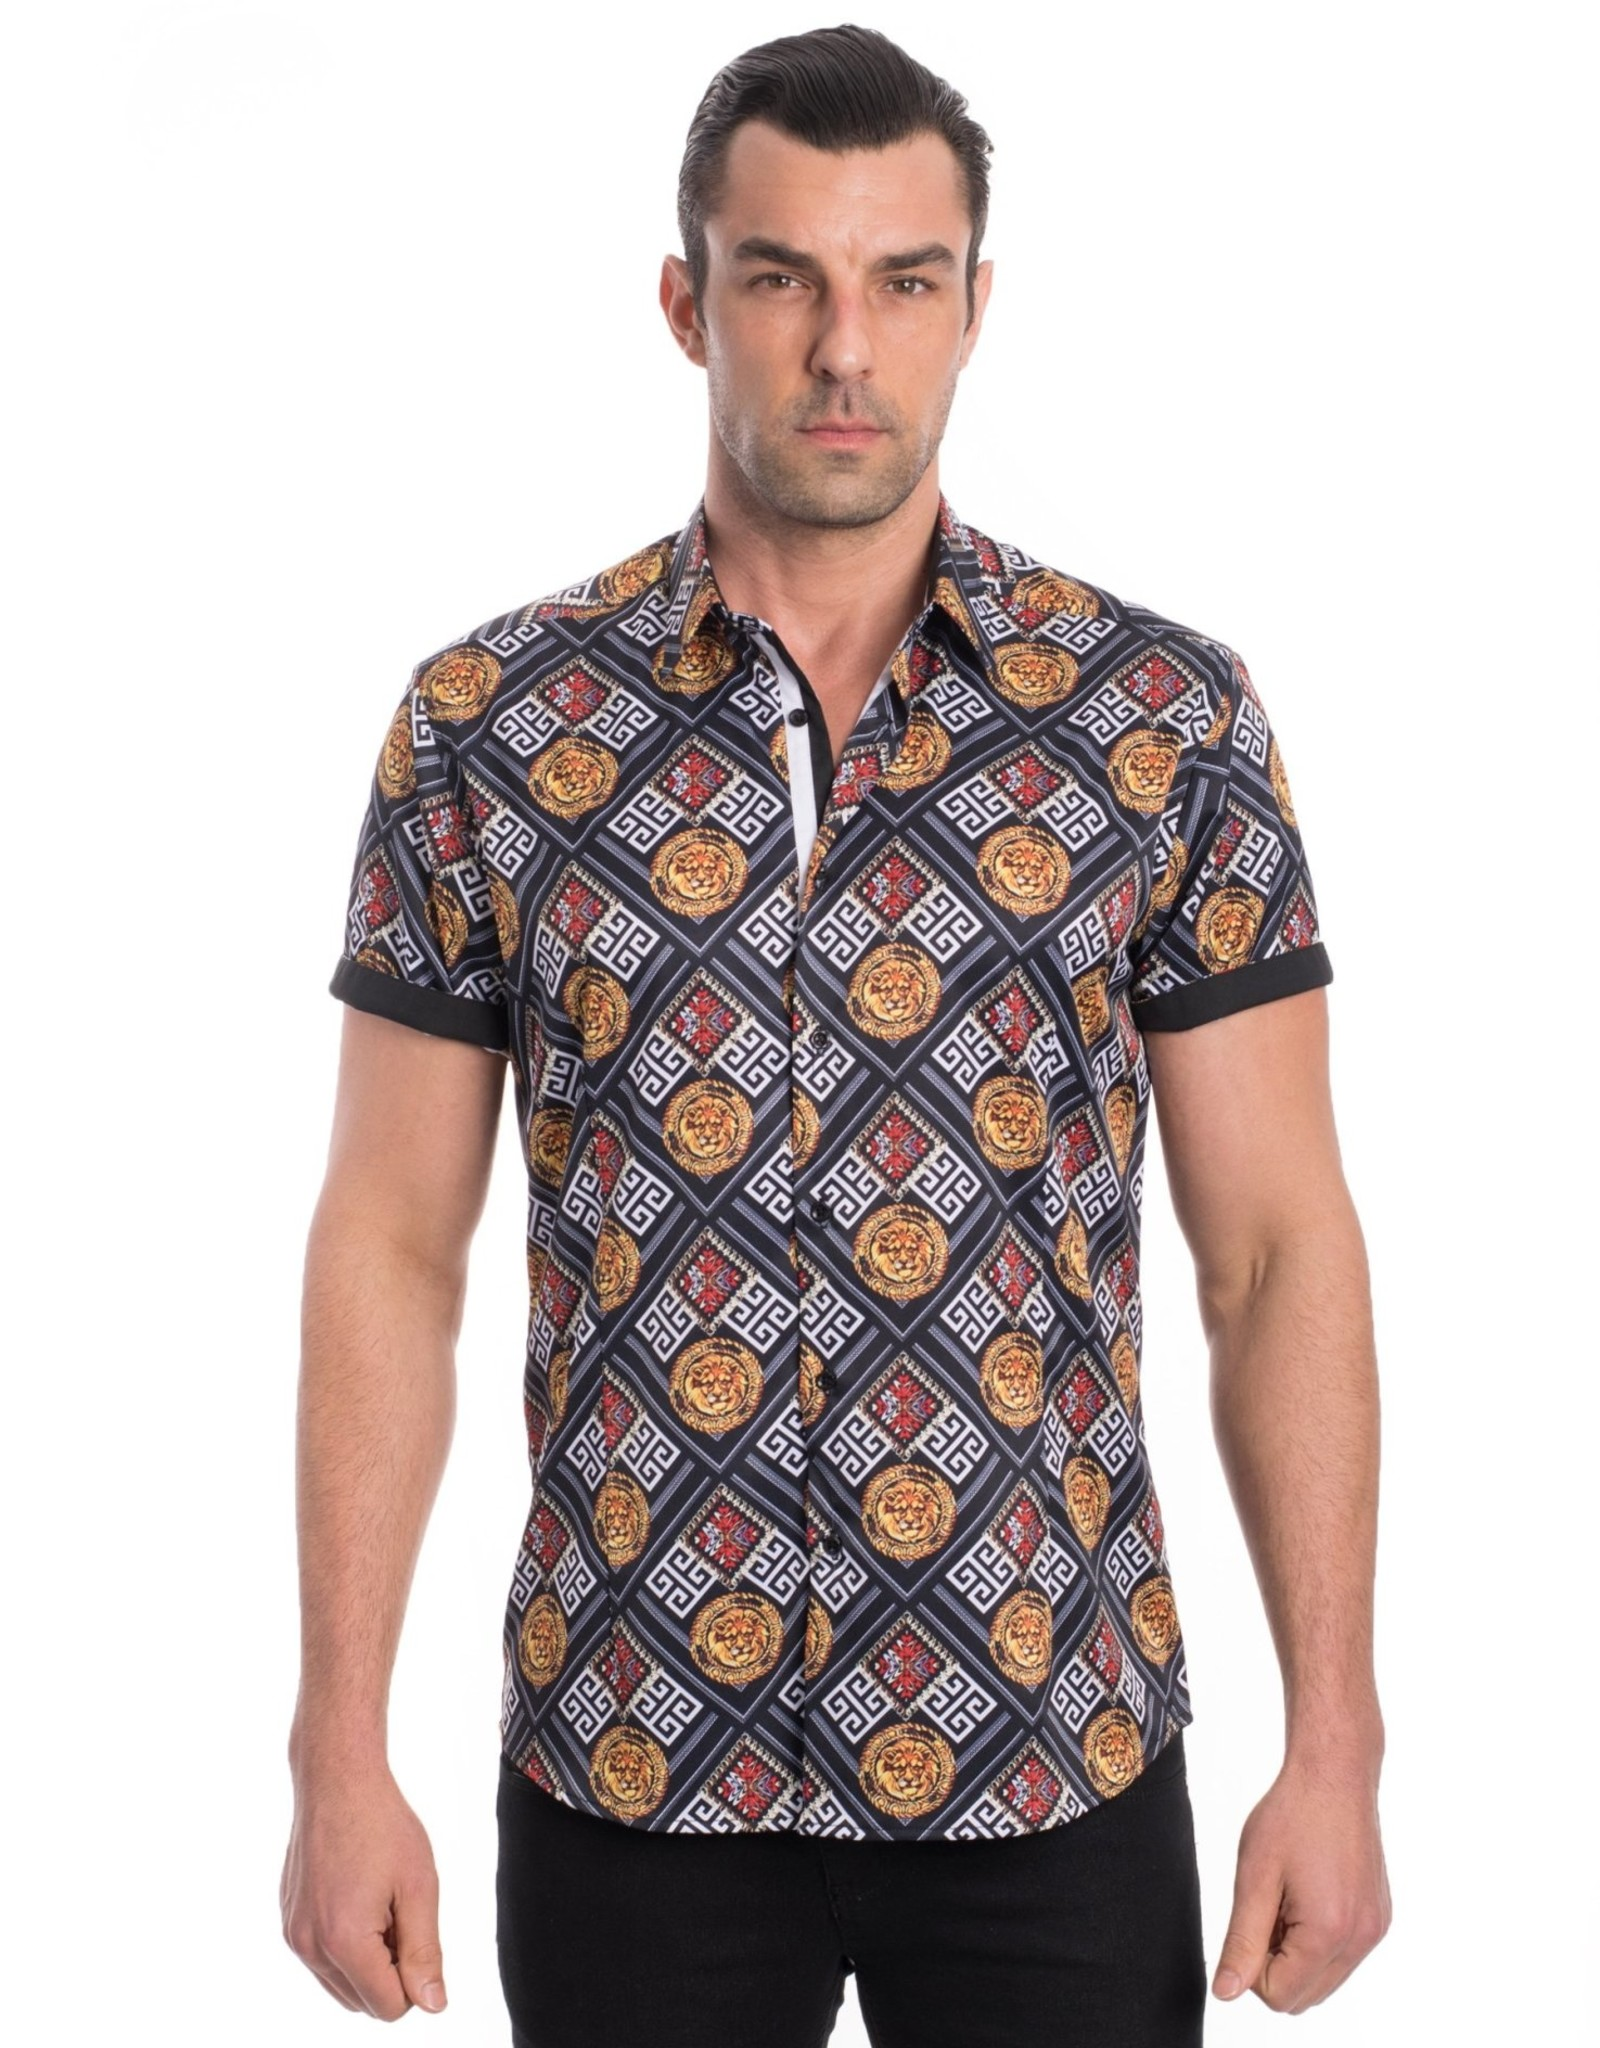 Urban Fitz Black Lion Crest Shirt